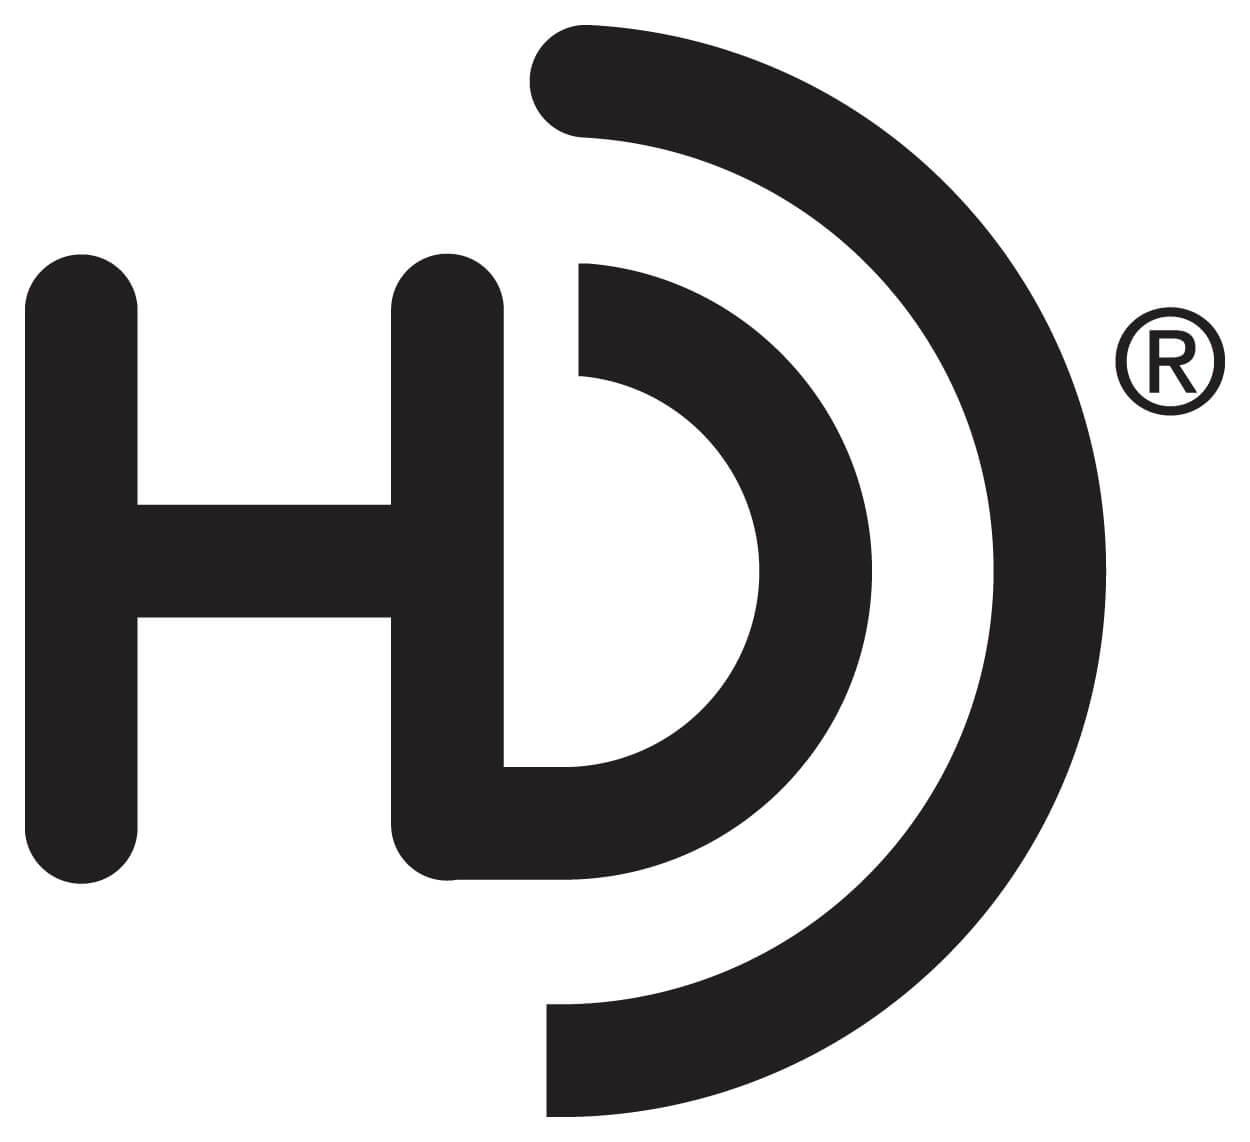 Hd Logo Png (92+ images in Collection) Page 3.